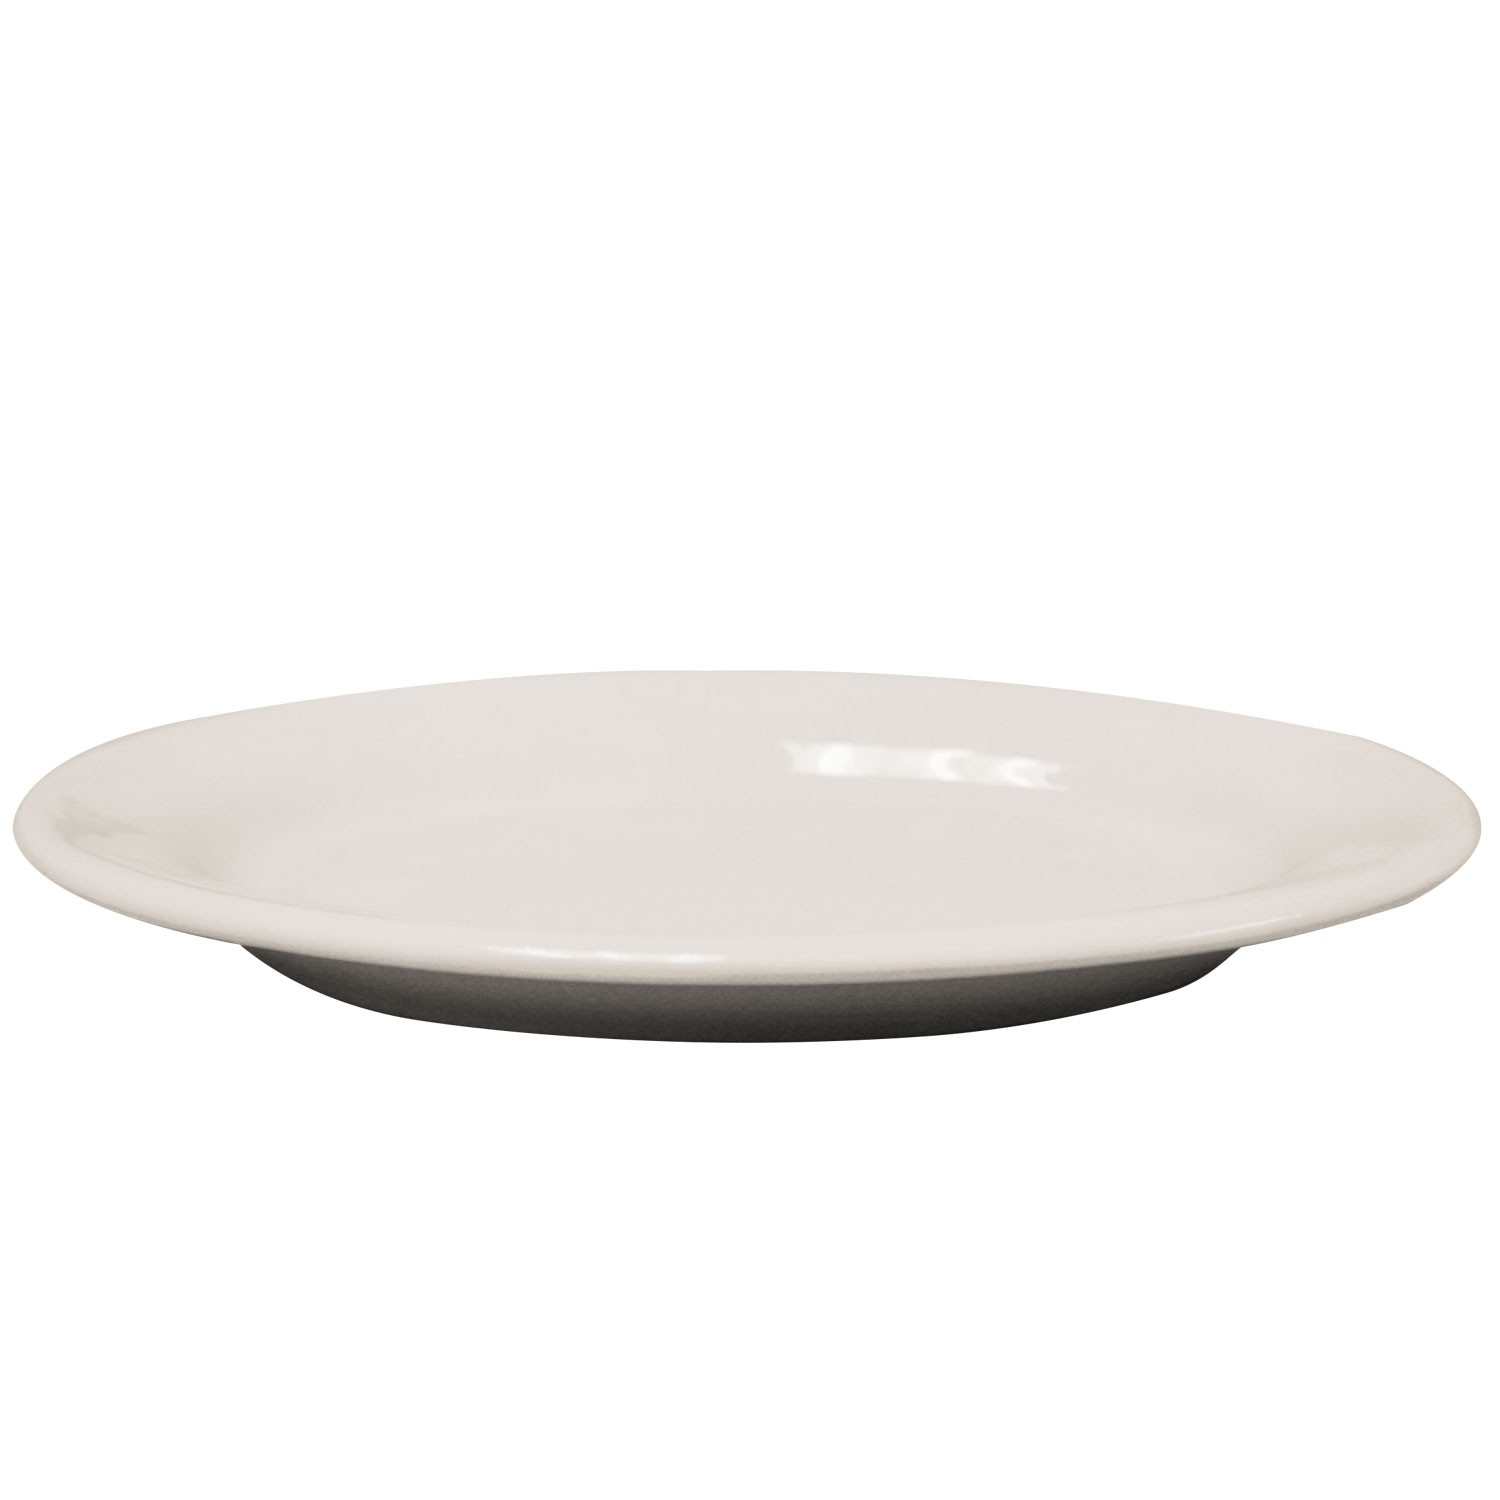 Vertex China BRE-28 Platter - 1 doz